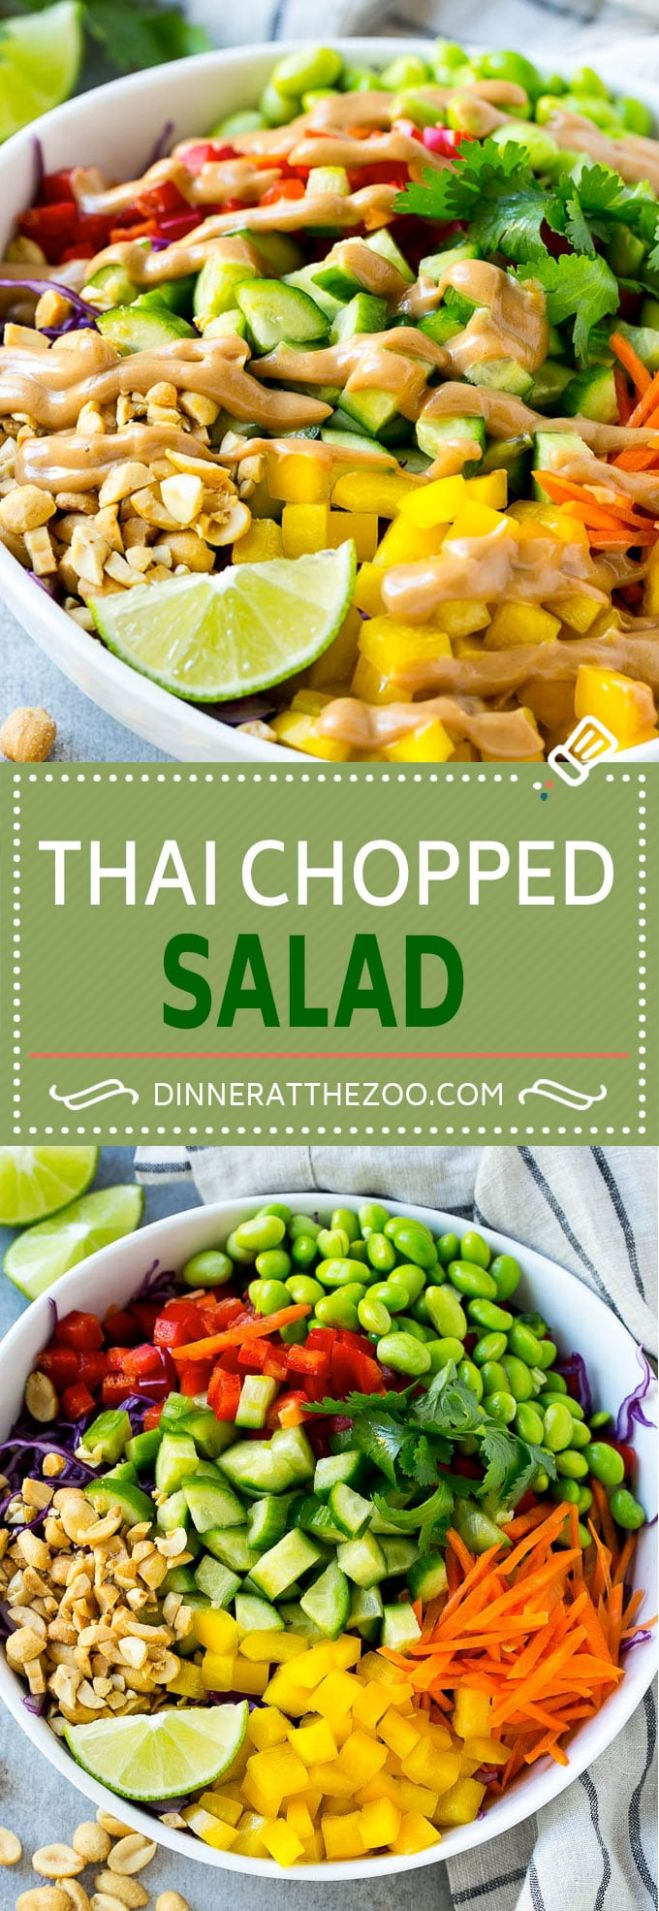 11 Healthy Salad Recipes - Dinner at the Zoo - Salad Recipes For Dinner